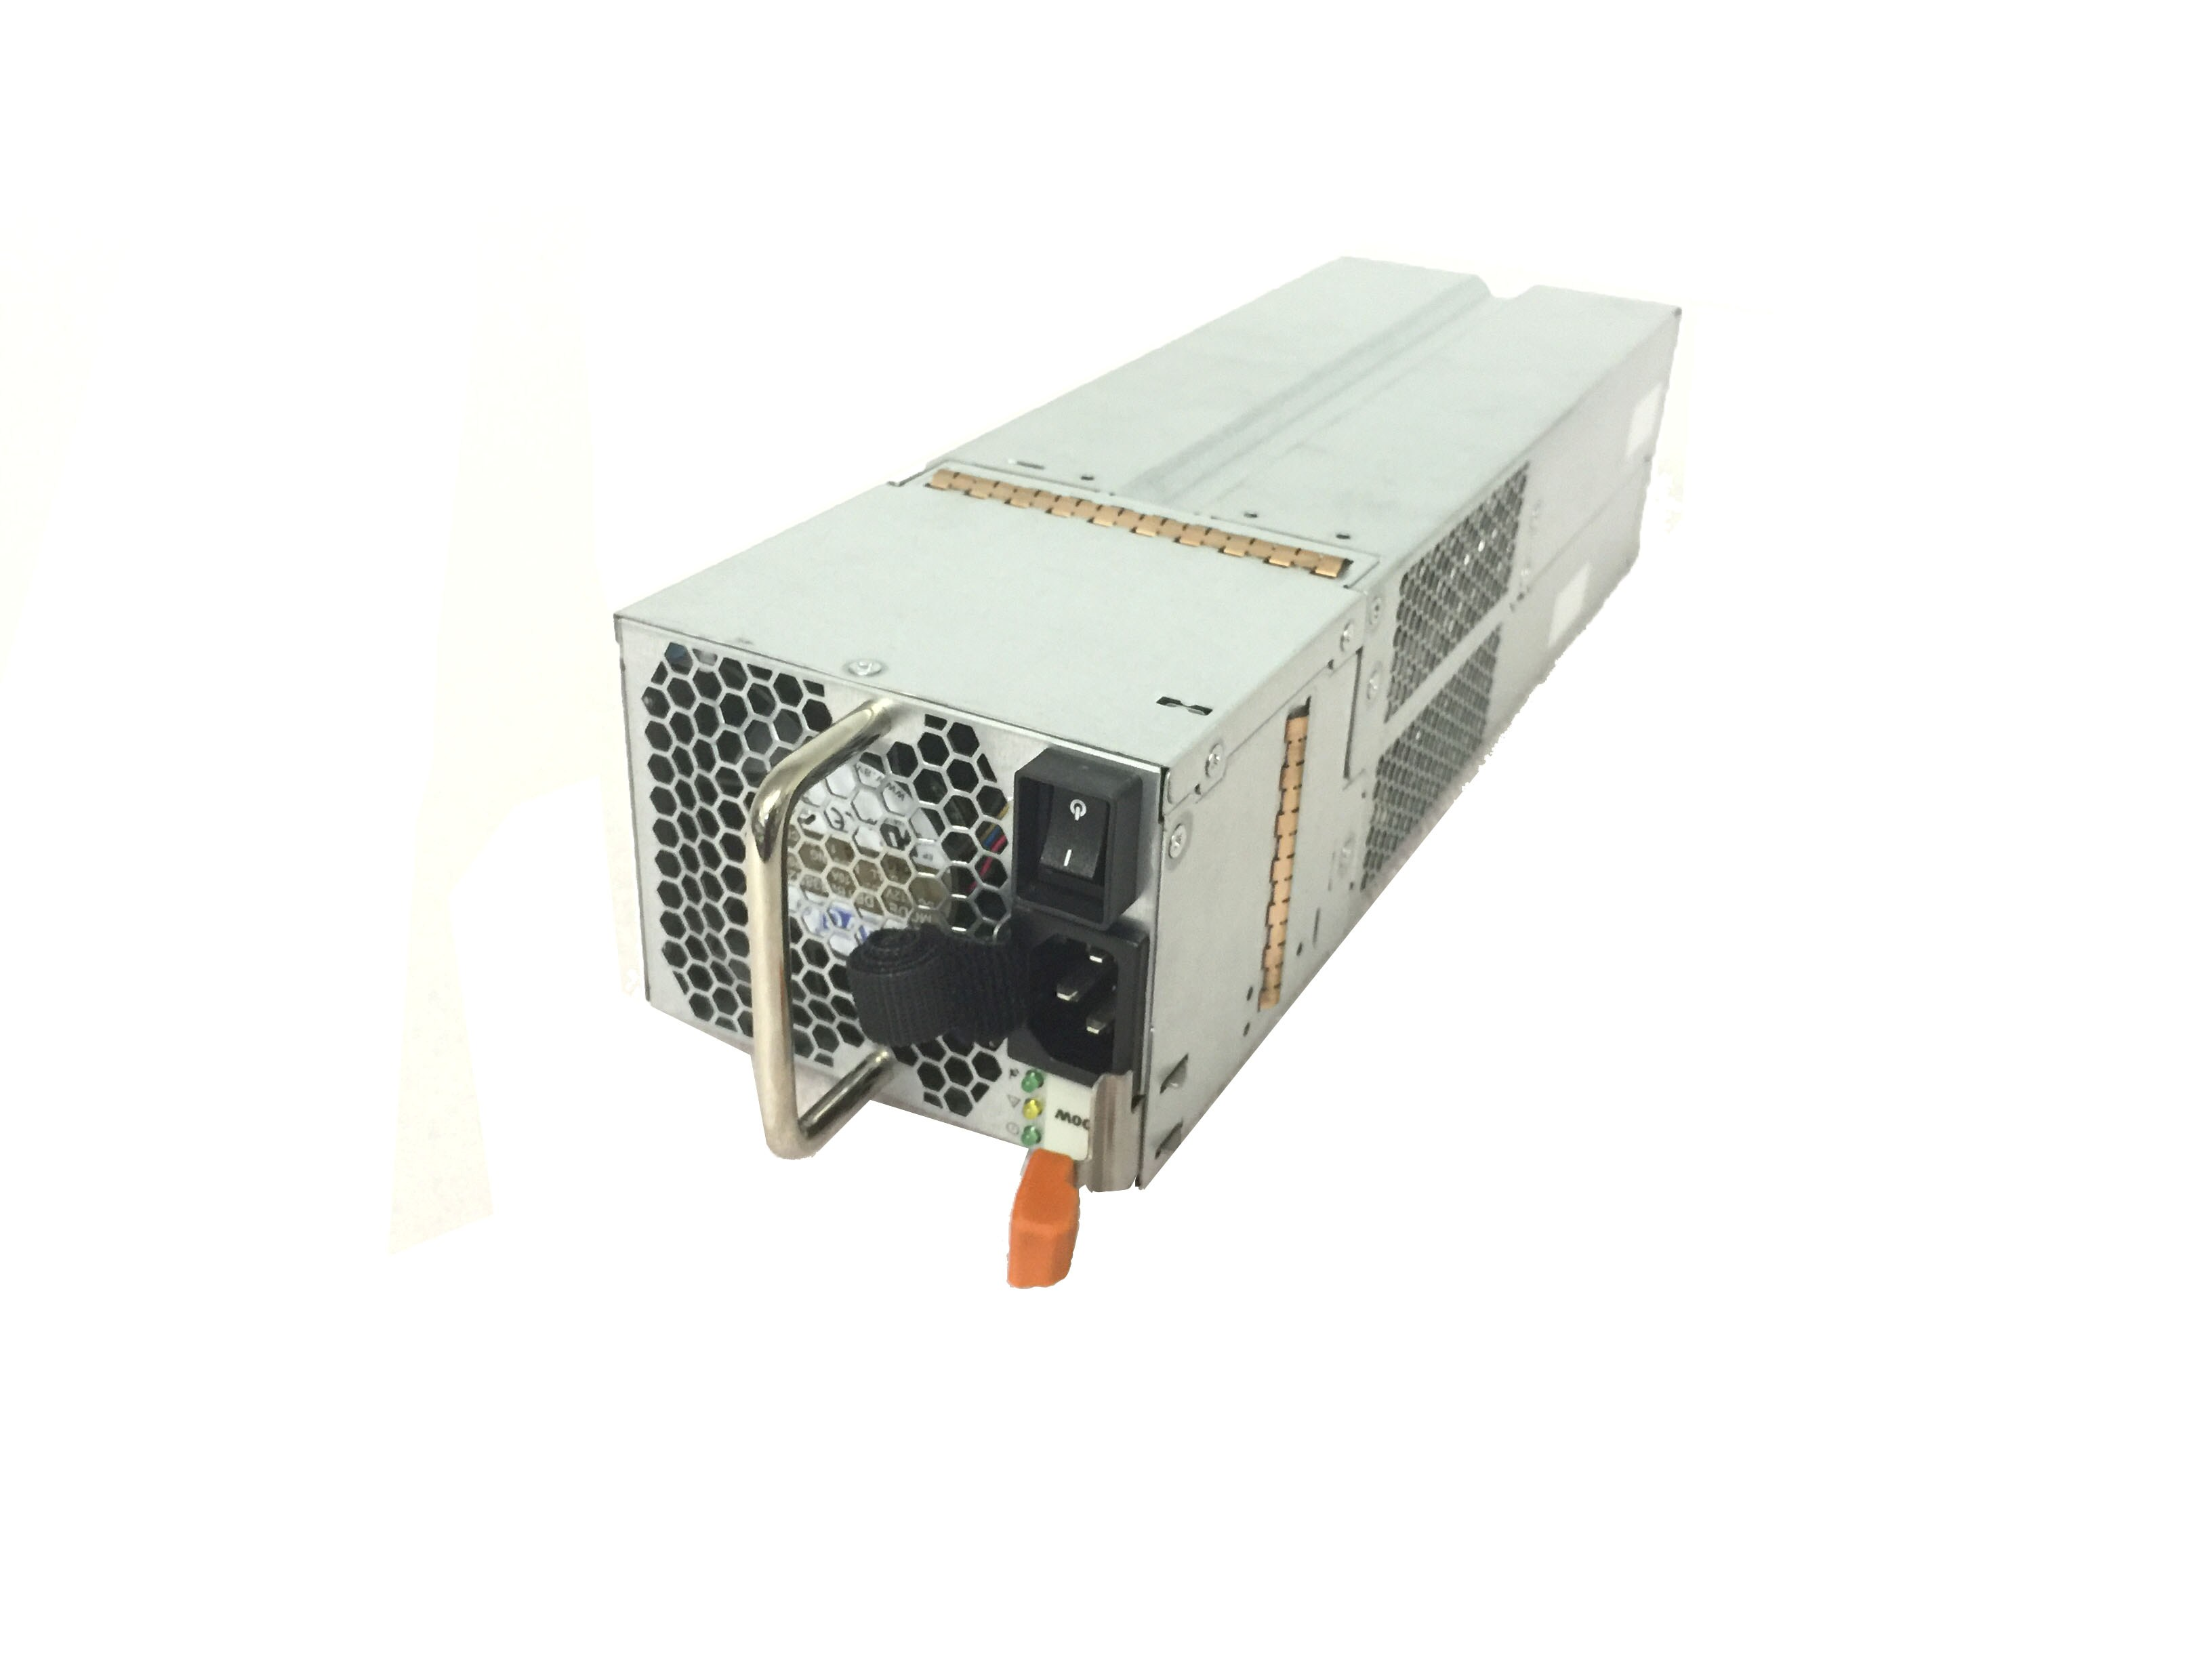 DELL EQUALLOGIC PS4100E/PS4100XV/PS6110X/SC200 700W PSU H700E-S0 (DD20N)